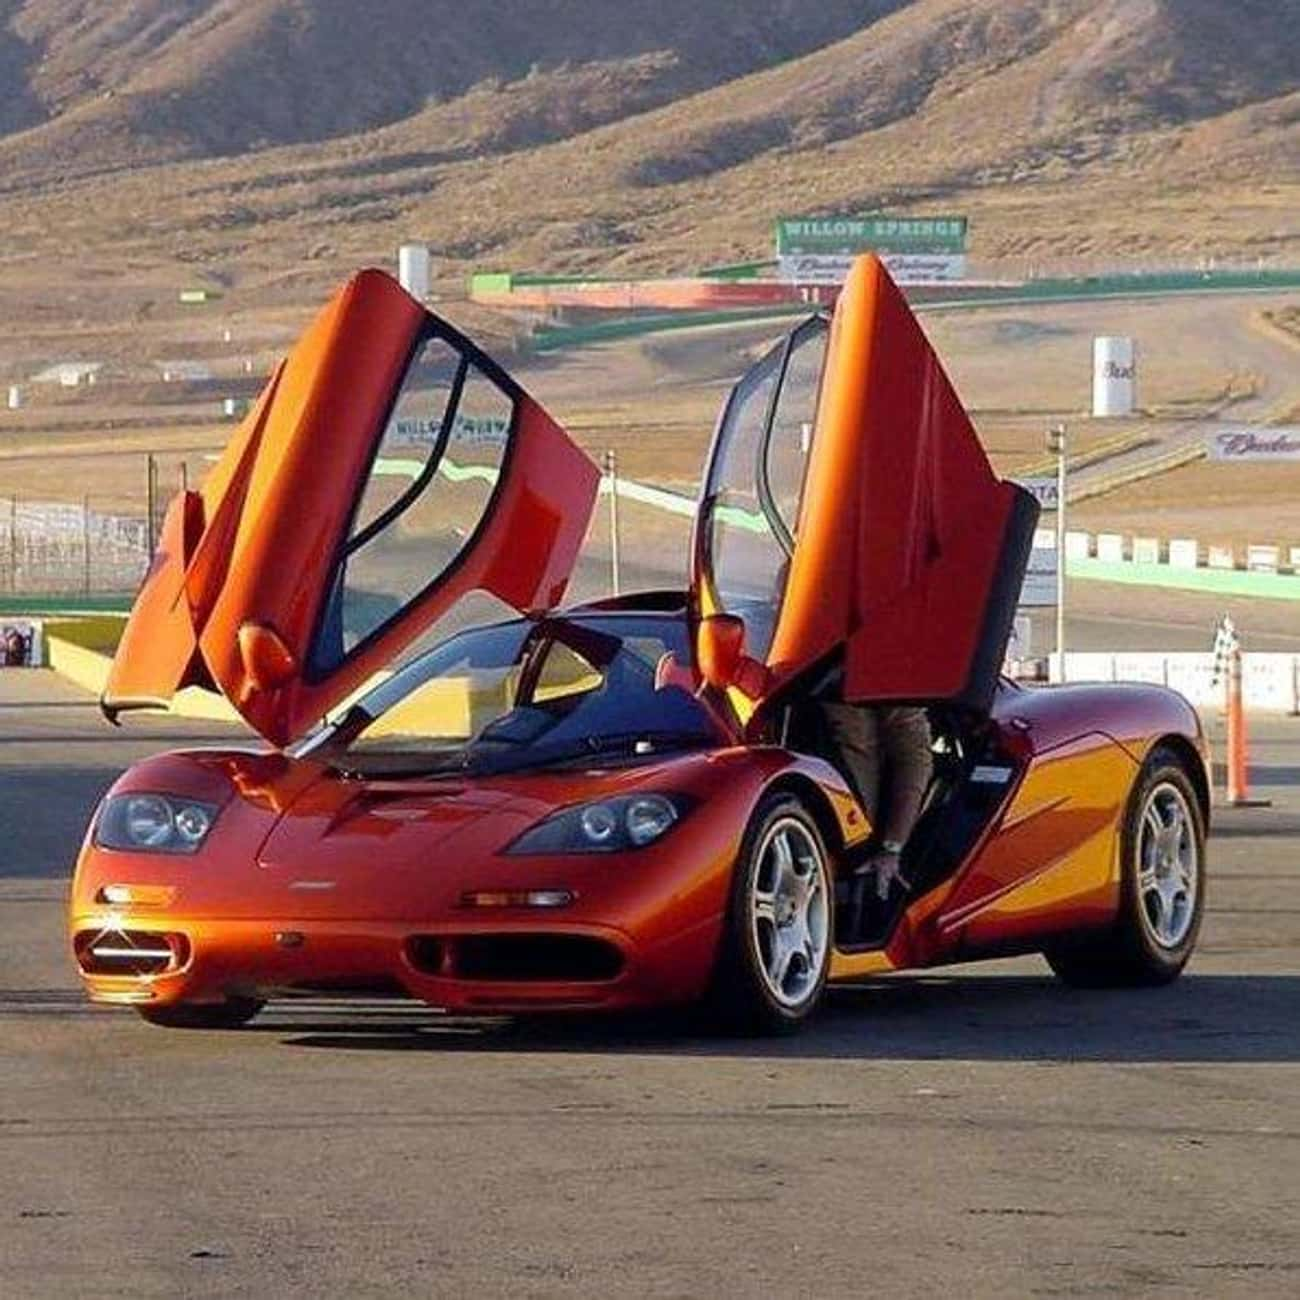 McLaren F1 is listed (or ranked) 4 on the list The Coolest Cars In The World